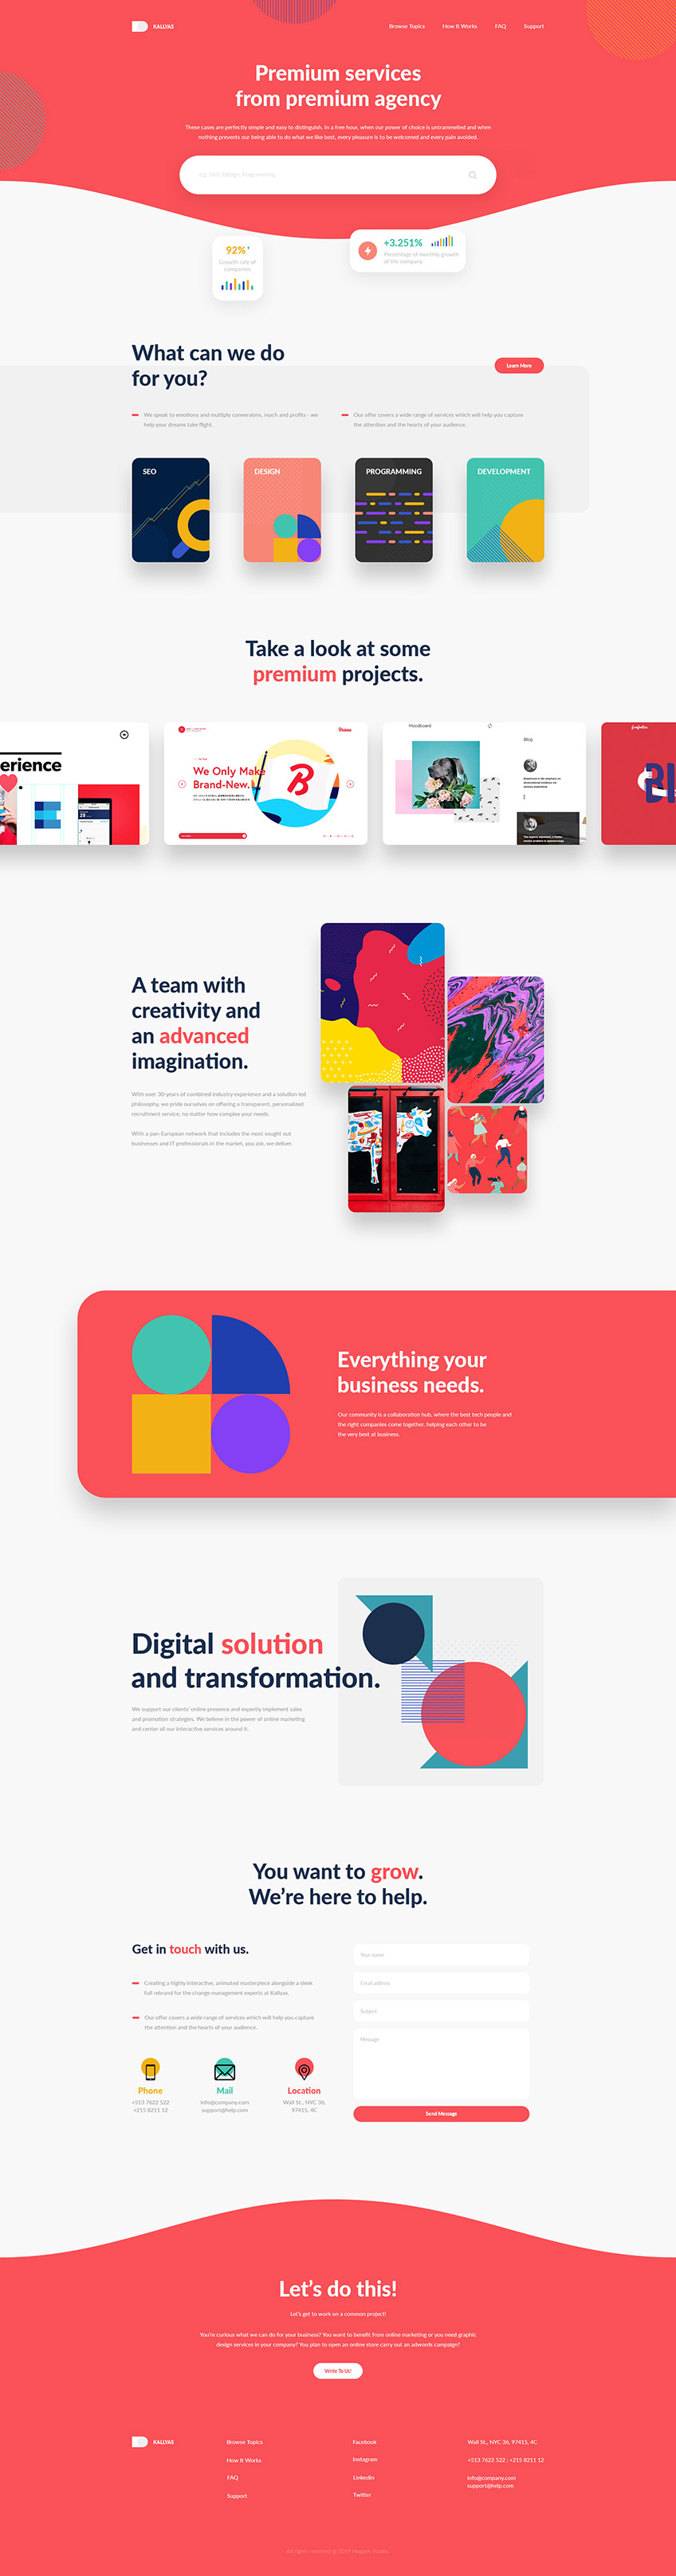 Services Agency - Free PSD Template